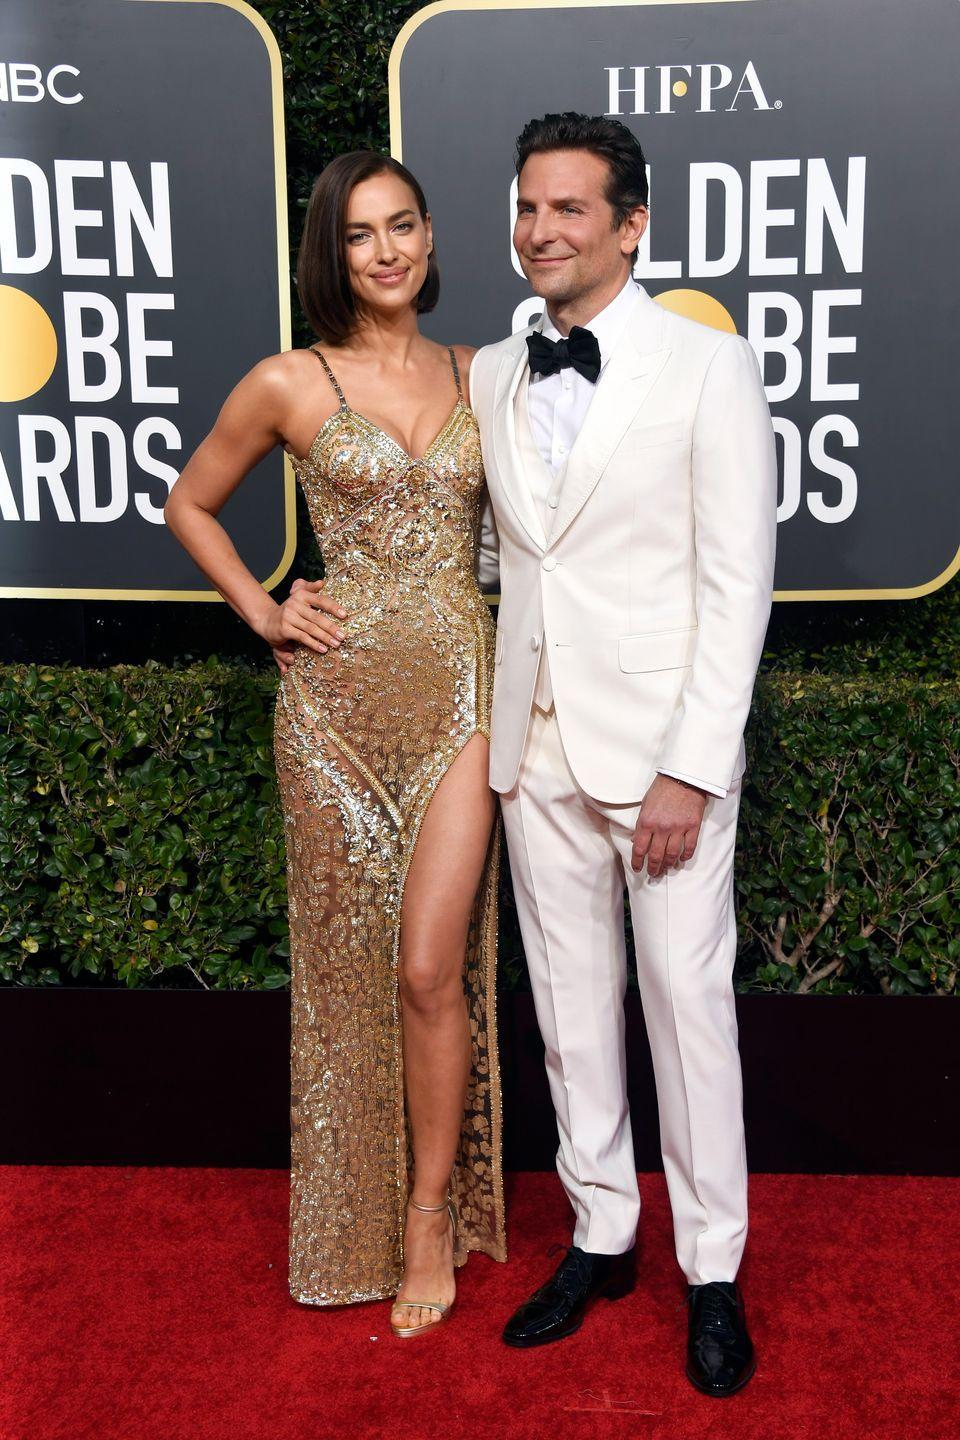 <p>All eyes were on Irina Shayk and Bradley Cooper at the 2019 Golden Globes—not only because of (false) rumors about Cooper and Lady Gaga but Shayk's stunning gilded Burberry dress with it's slit-up-to-there also gave onlookers something to talk about.</p>